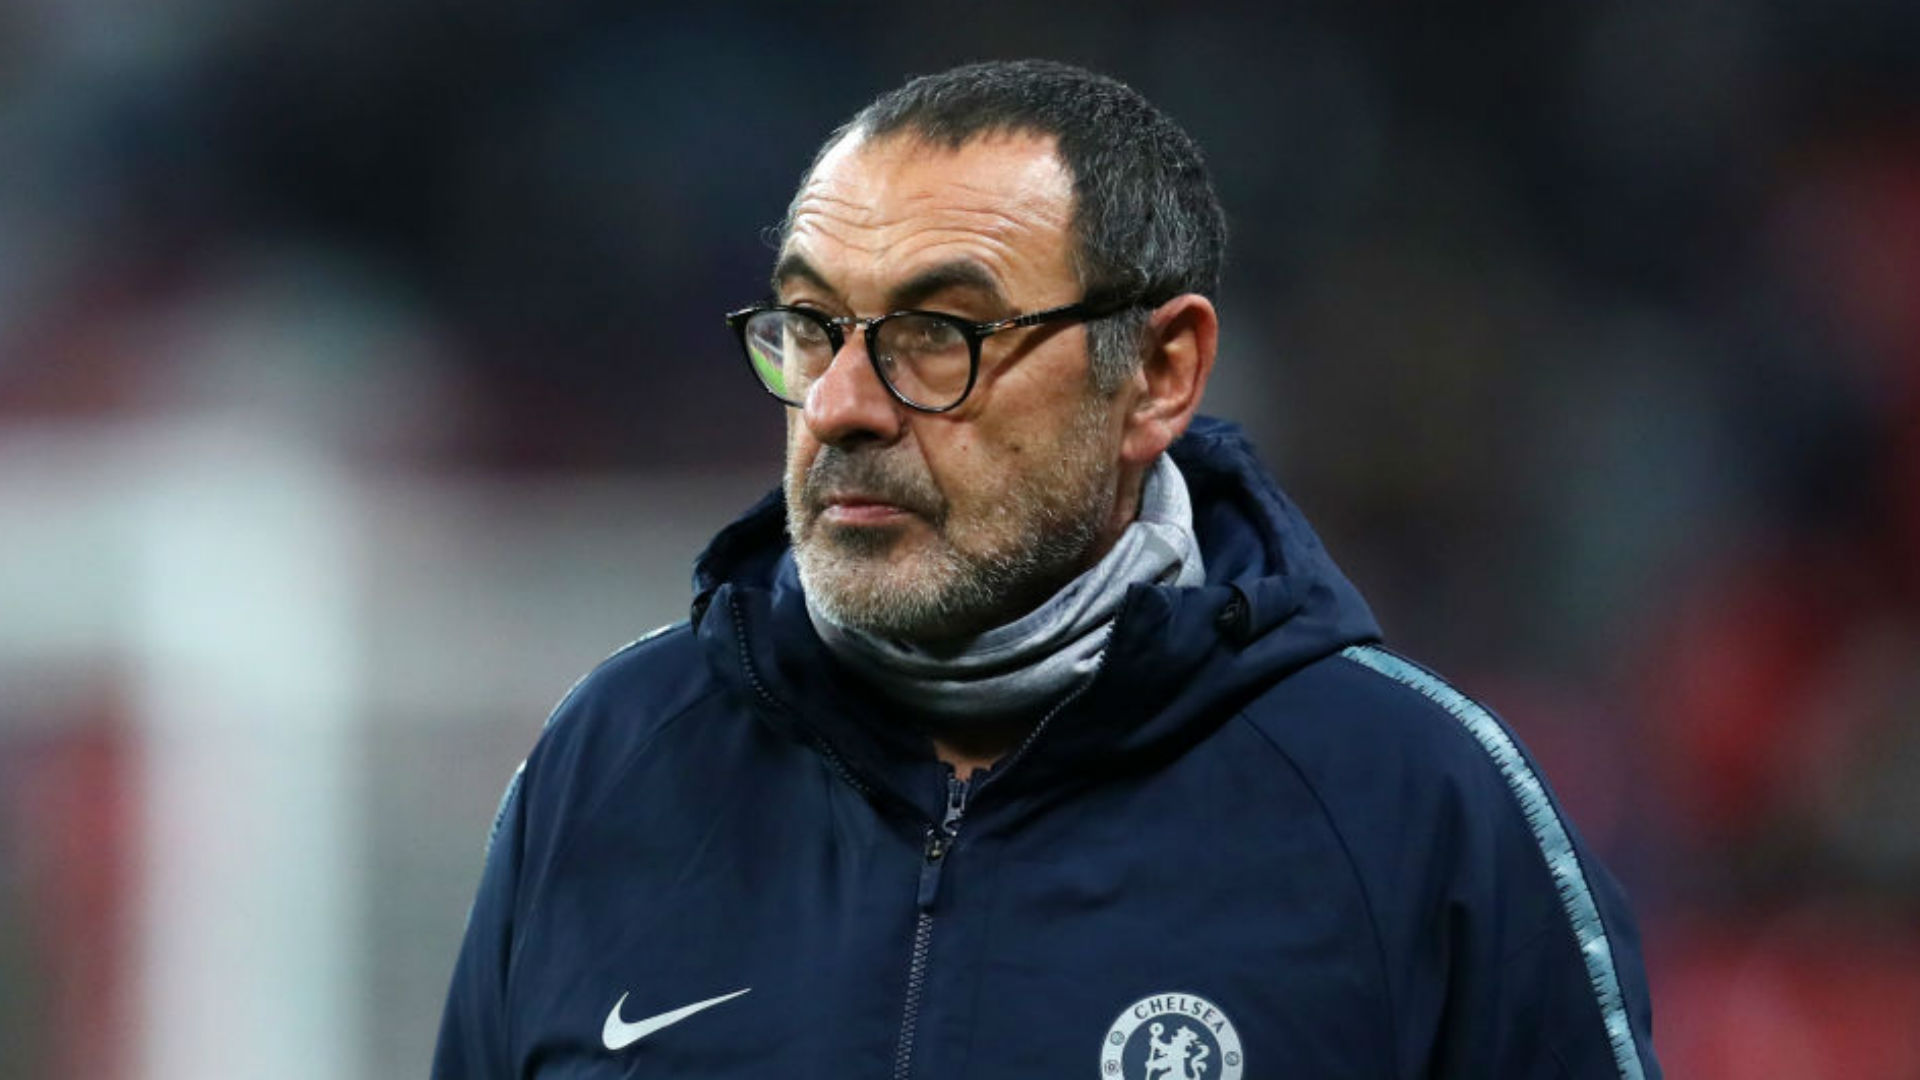 Chelsea were left to rue a VAR-assisted decision in their defeat to Tottenham in the EFL Cup semi-finals first leg.